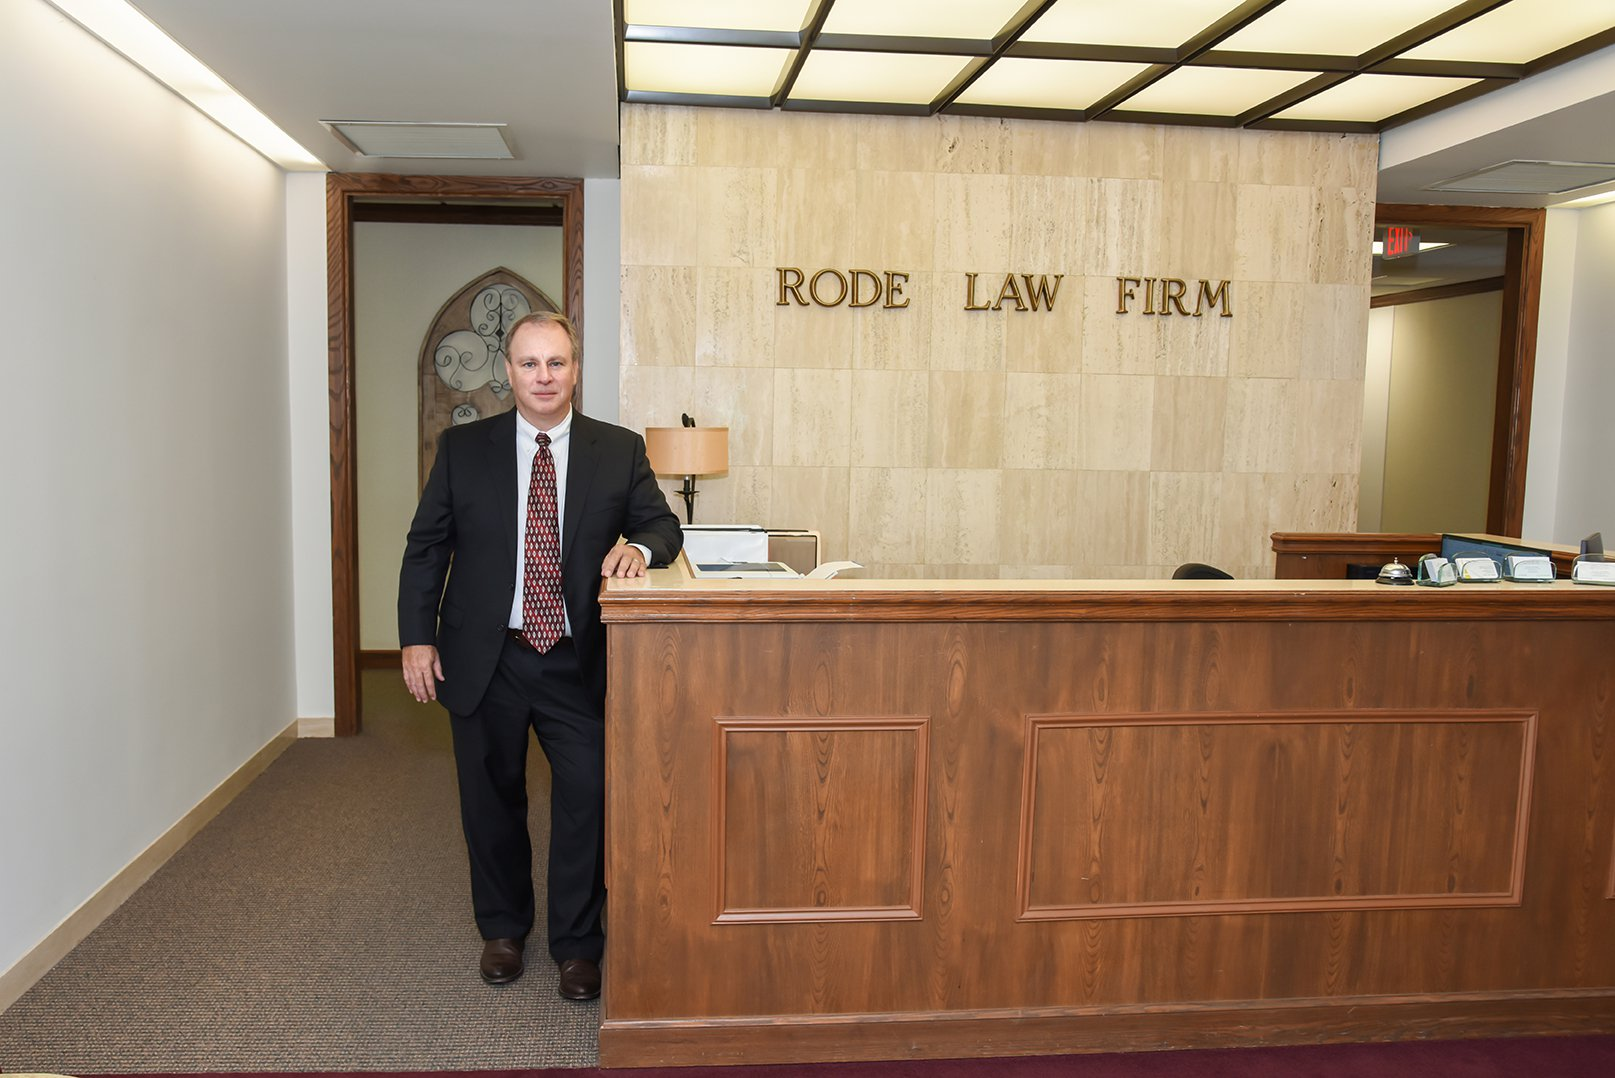 Robert Rode at Rode Law Firm front desk